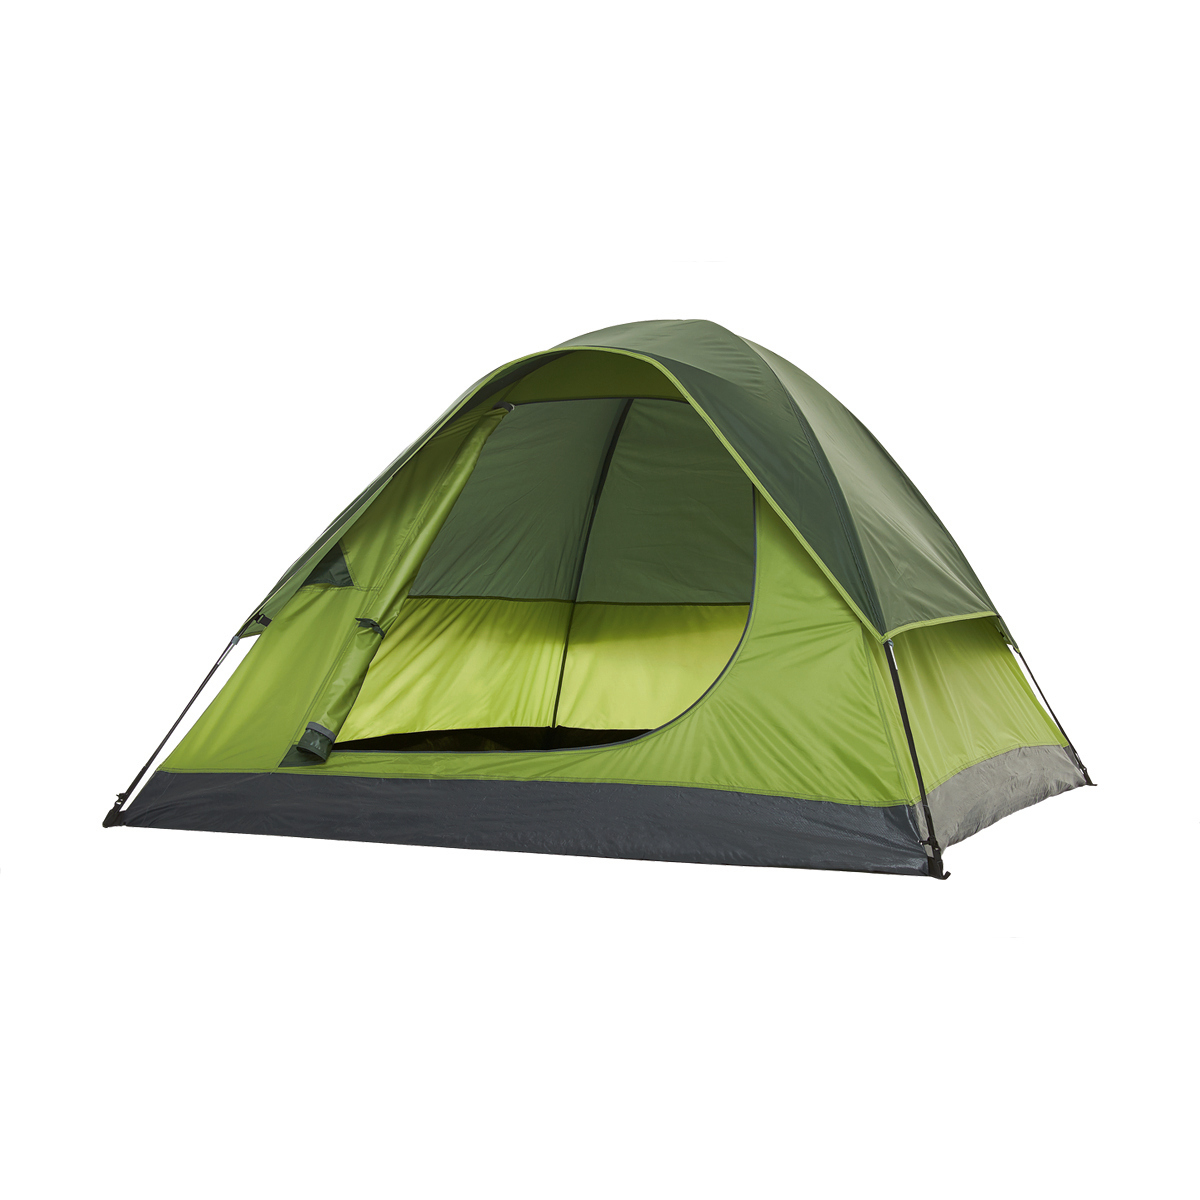 + / - Hover over image to Zoom  sc 1 st  Kmart & 3-Person Dome Tent | Kmart